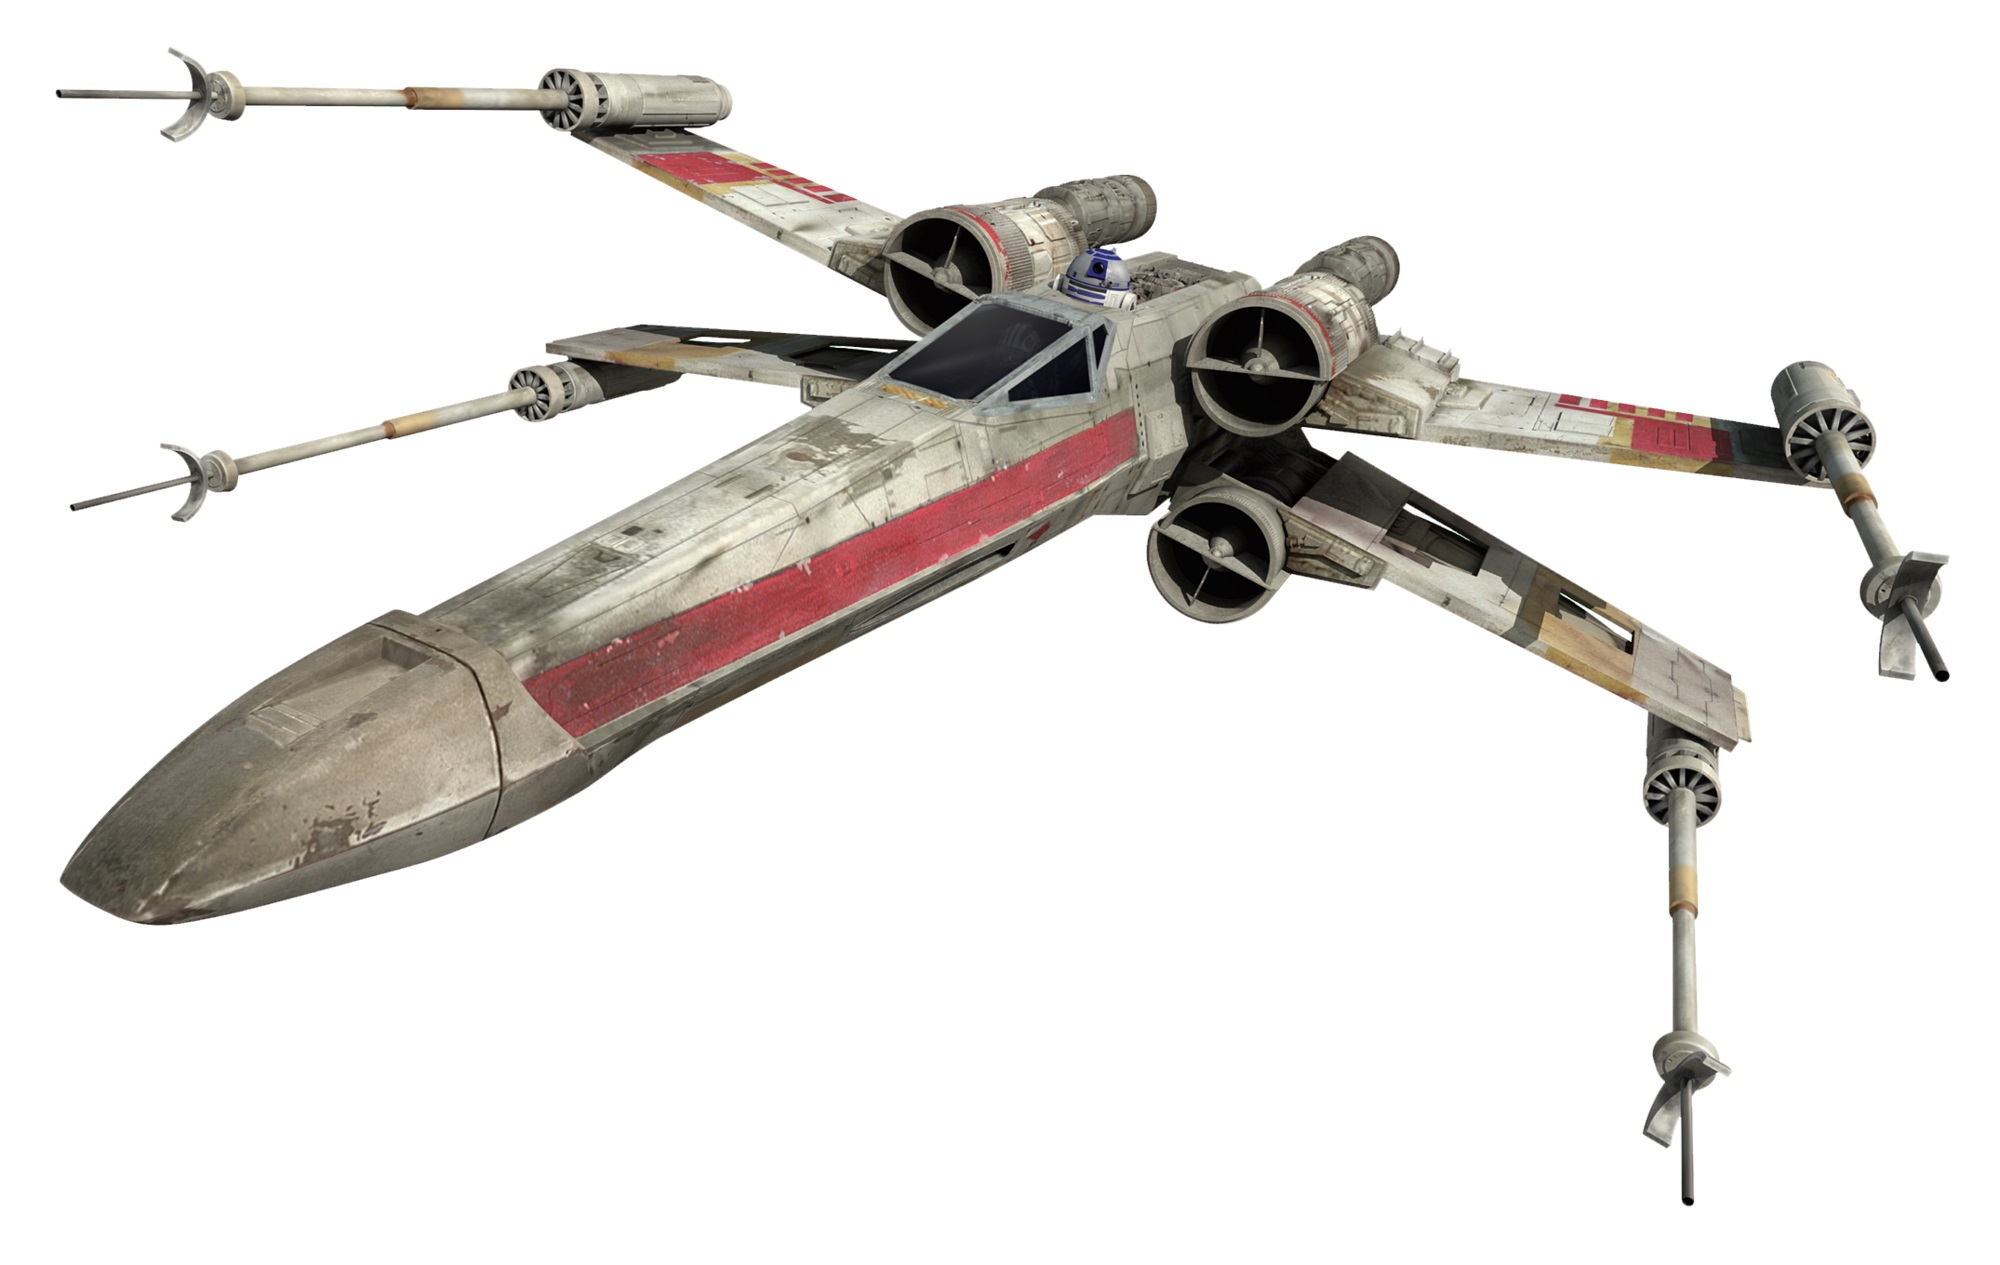 Click image for larger version  Name:X-wing_Fathead.jpg Views:29 Size:253.3 KB ID:2245047